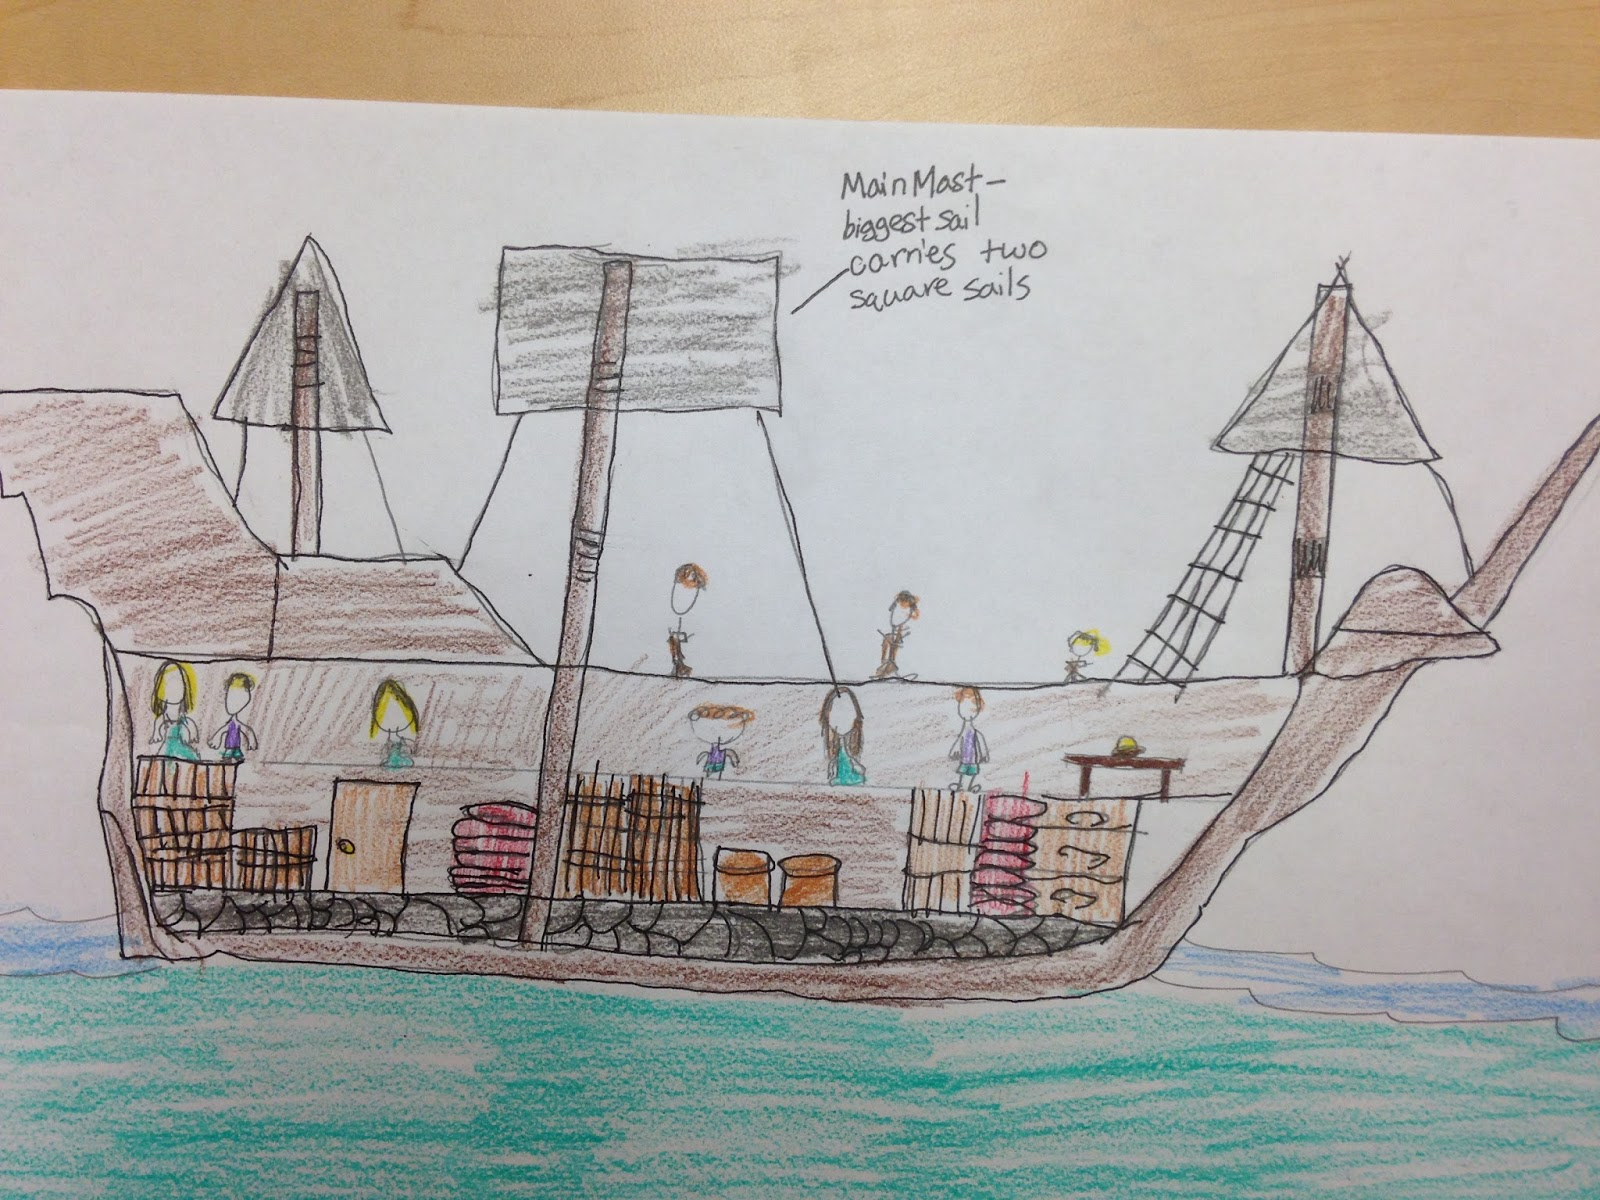 Pirate Ship Inside Diagram Level 1 Data Flow Classroom Freebies Too Mayflower Diagrams